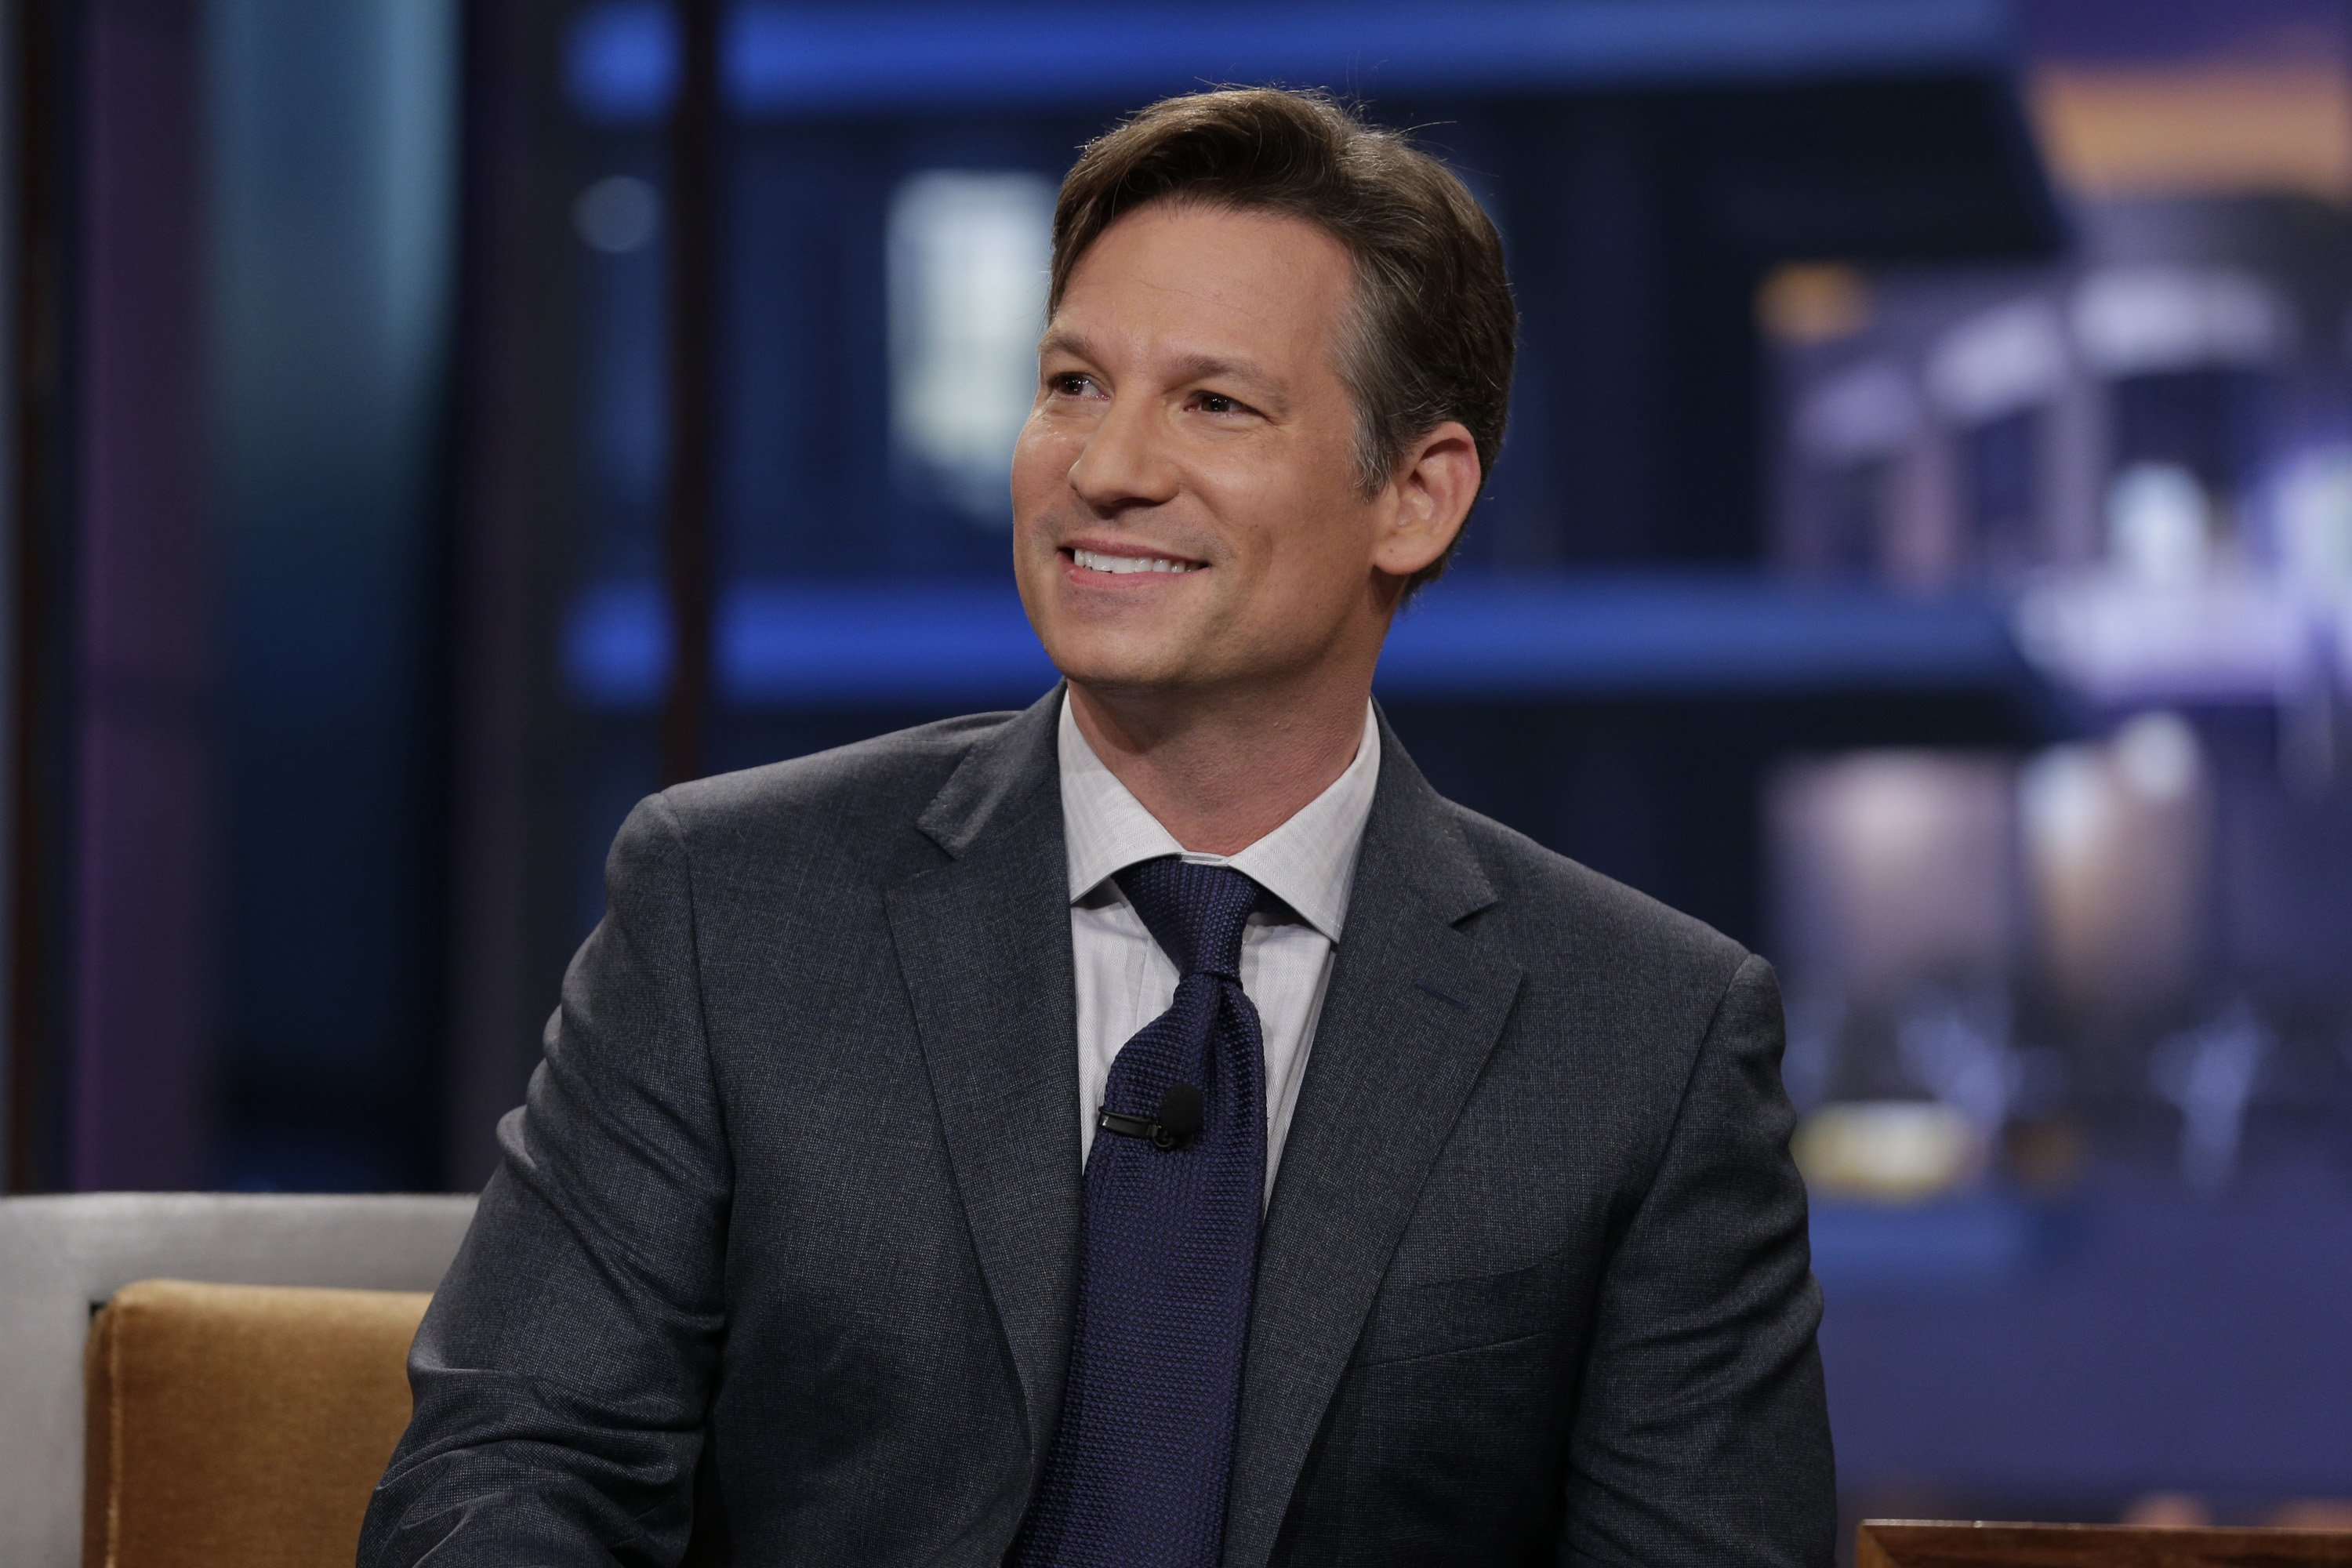 Richard Engel during an interview on October 25, 2013. | Photo: Getty Images.